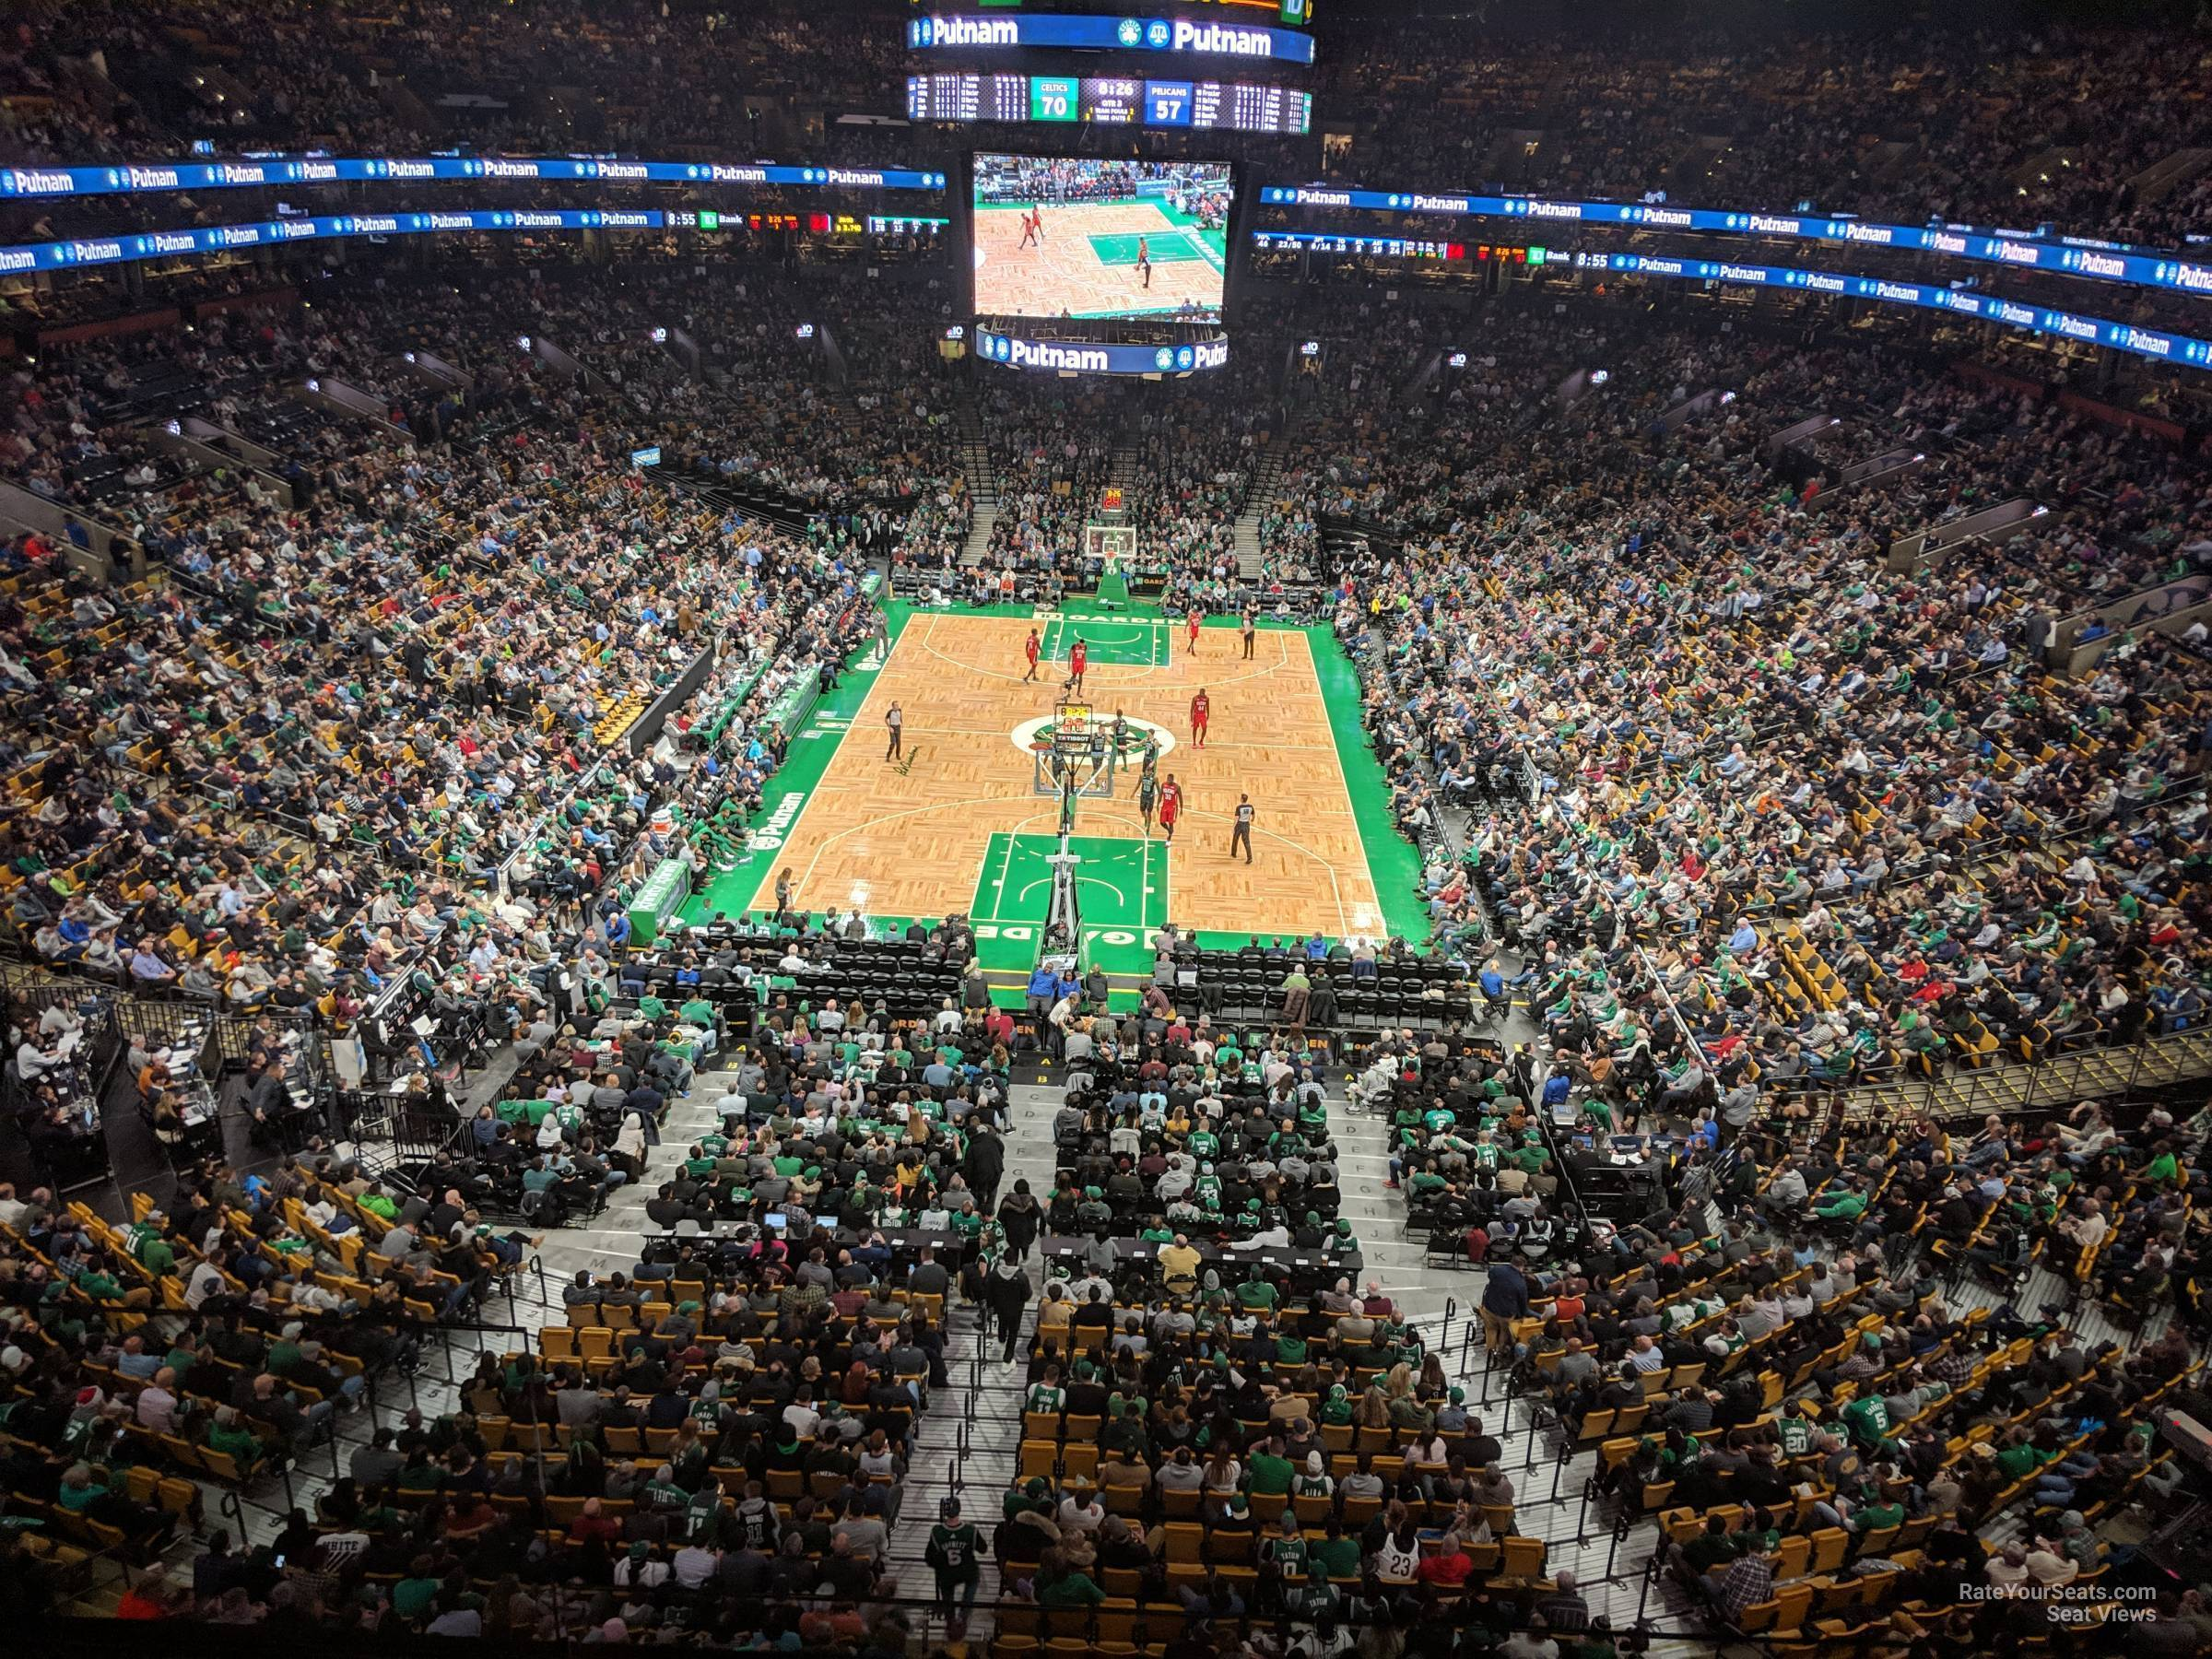 Section 323 seat view